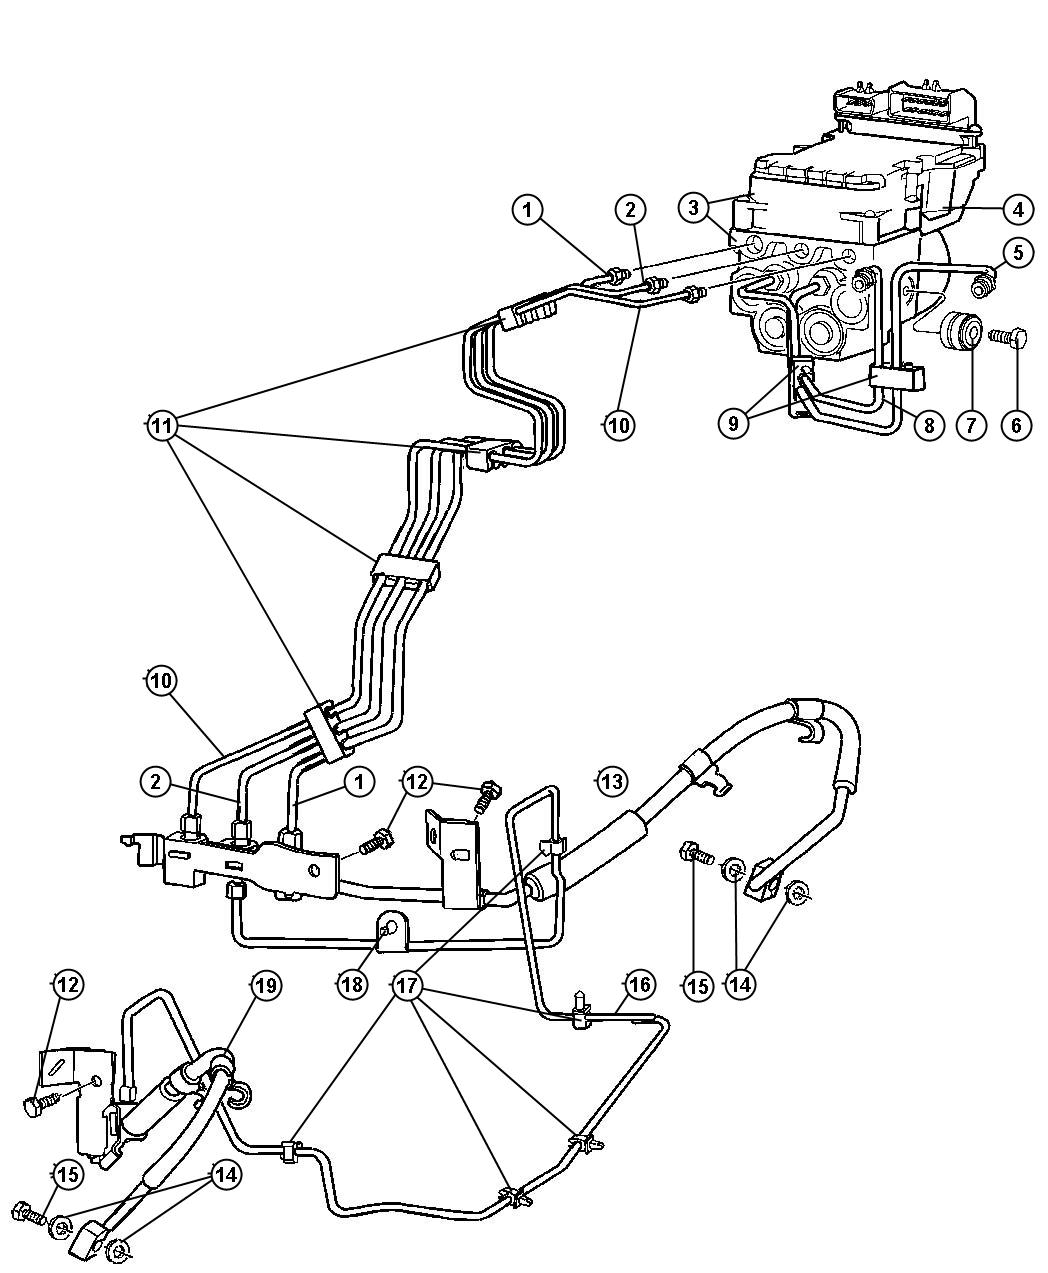 gmc sierra front suspension diagram  gmc  free engine image for user manual download